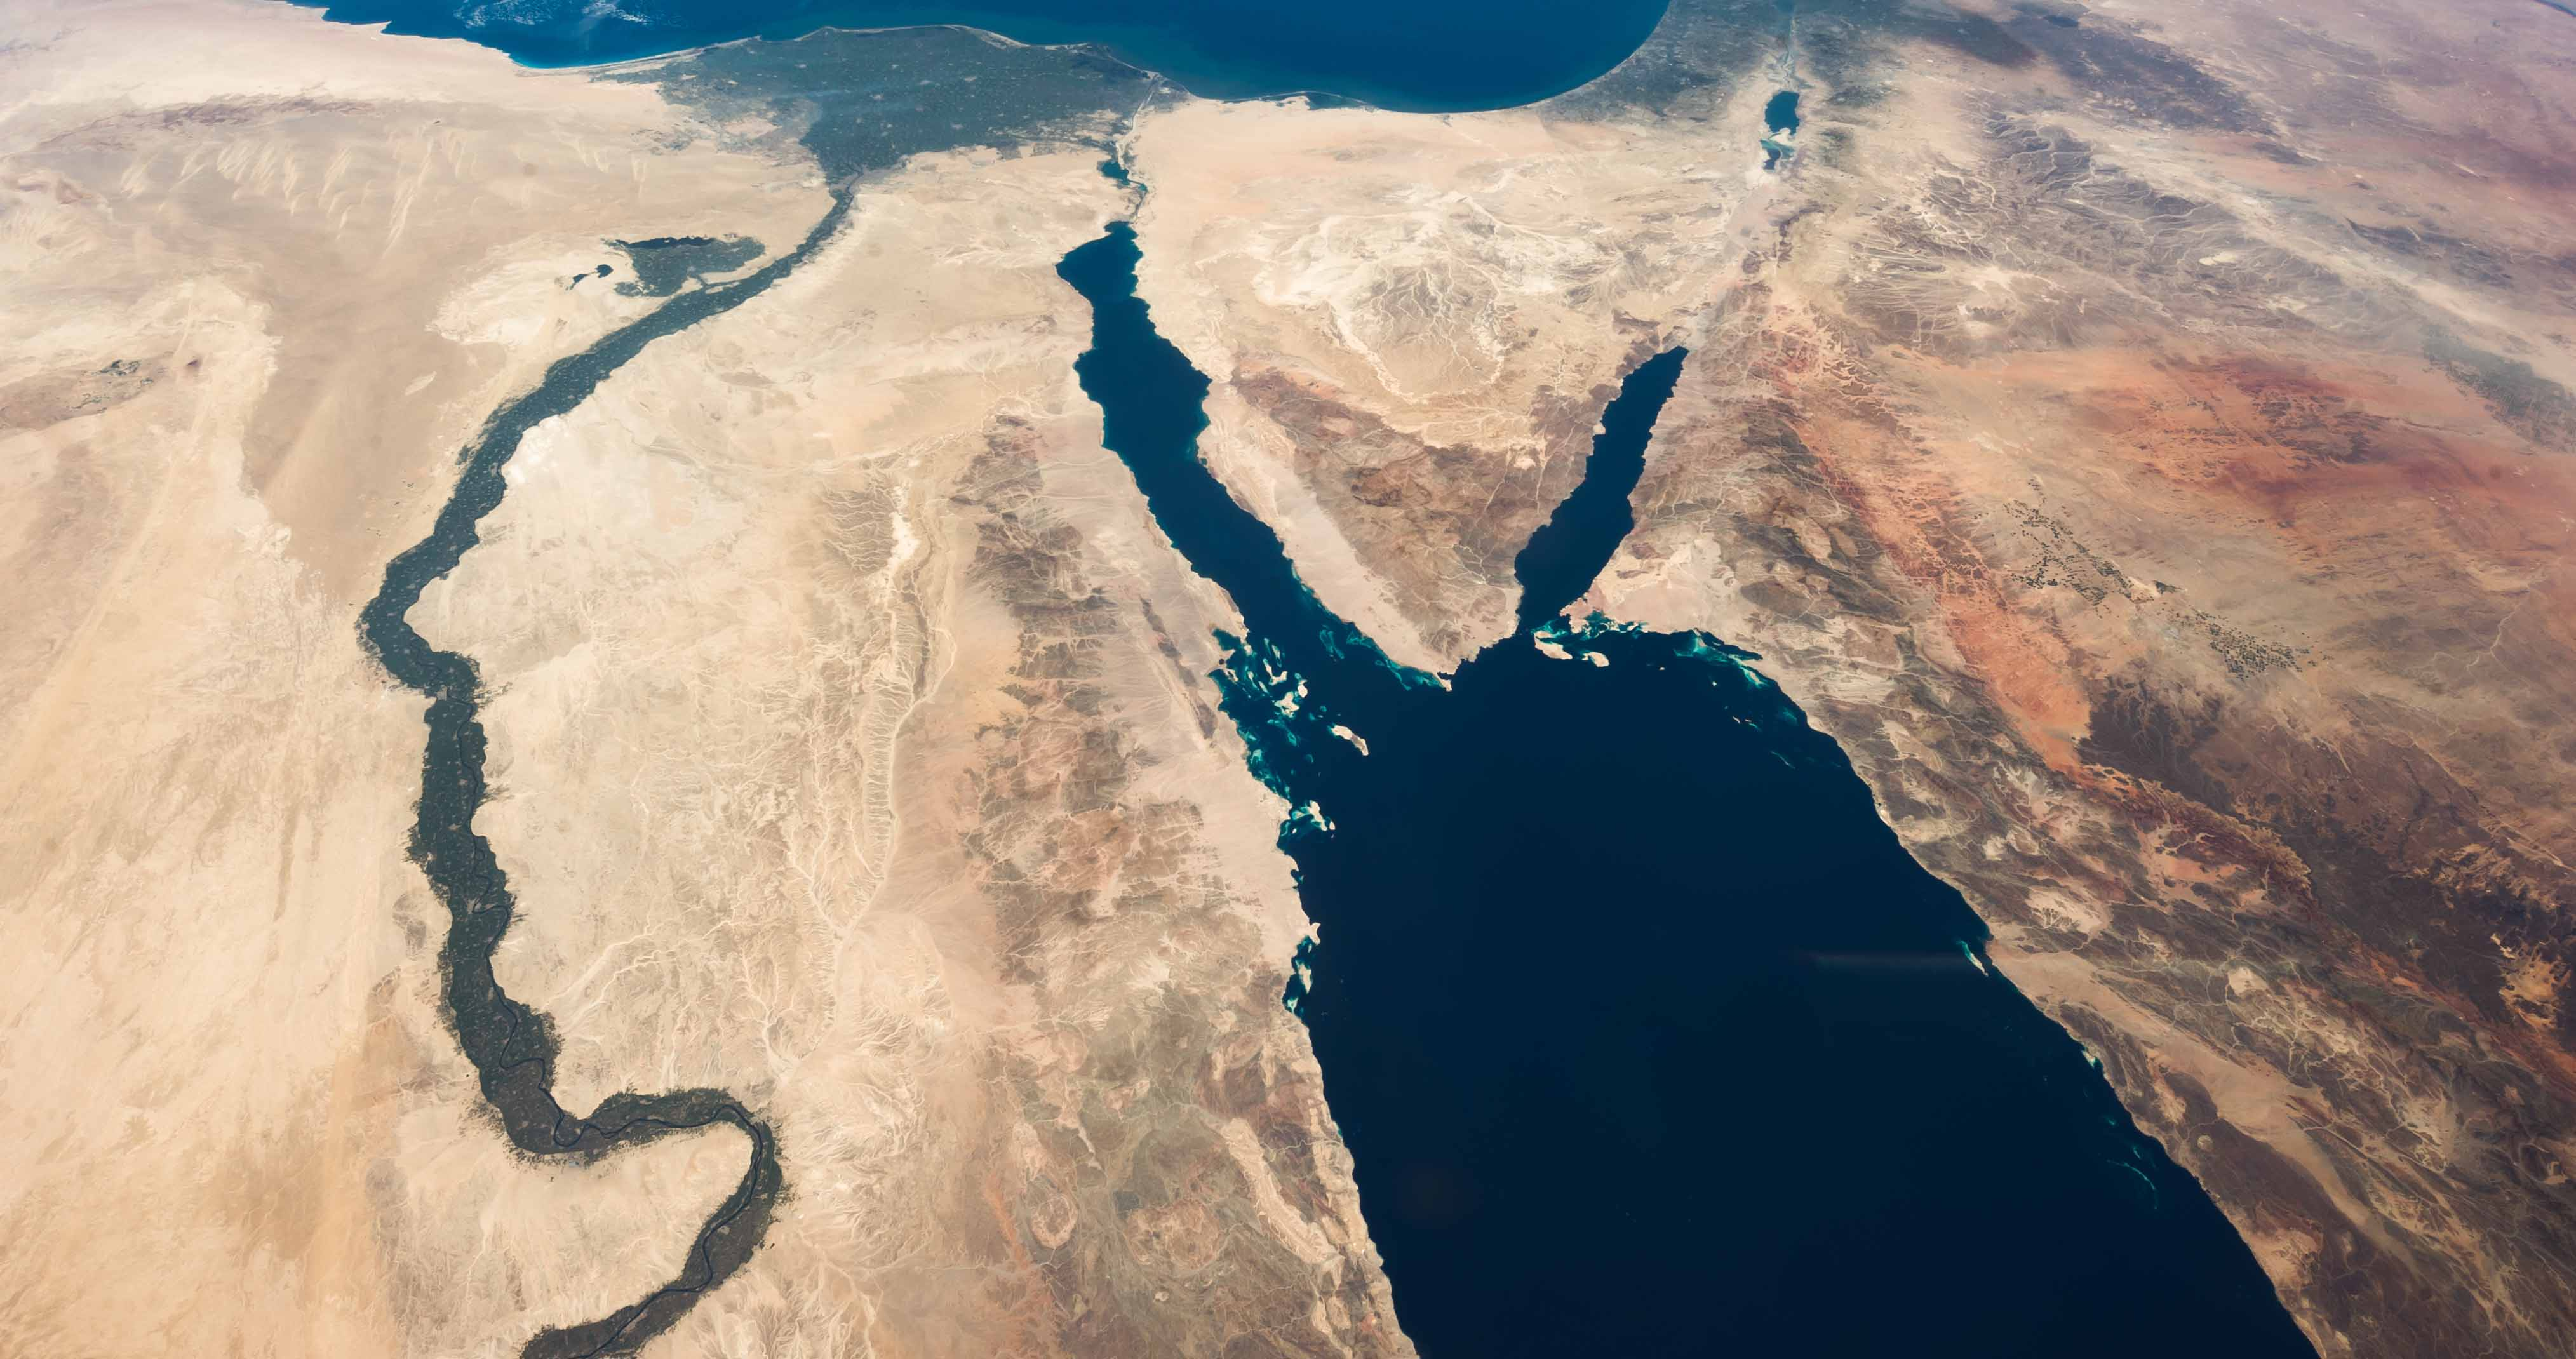 The Nile River and the Sinai Peninsula (Photo: Nasa)